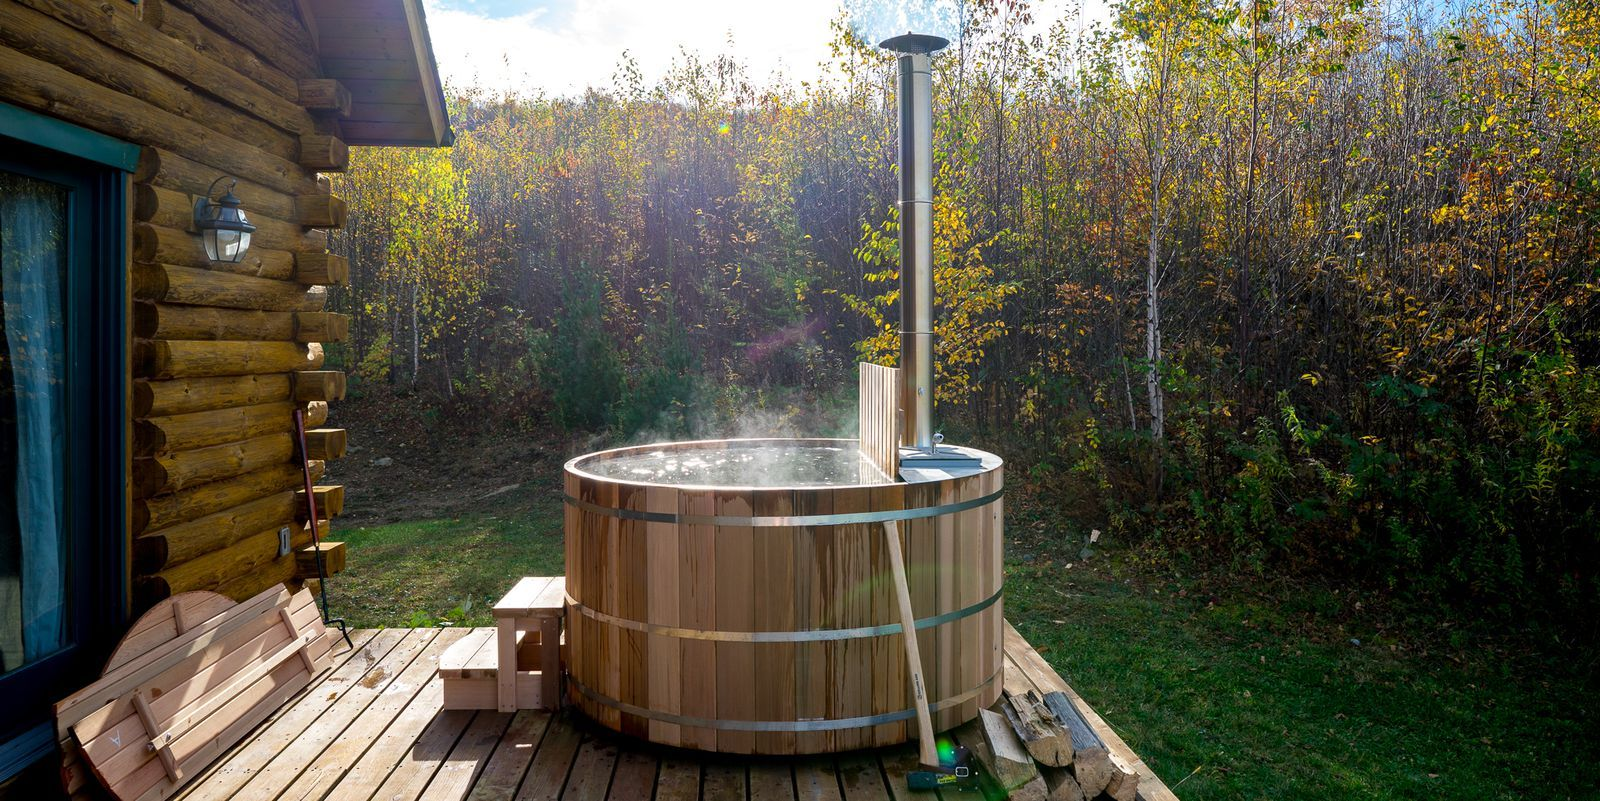 How to build a woodfired hot tub hot tub garden rustic